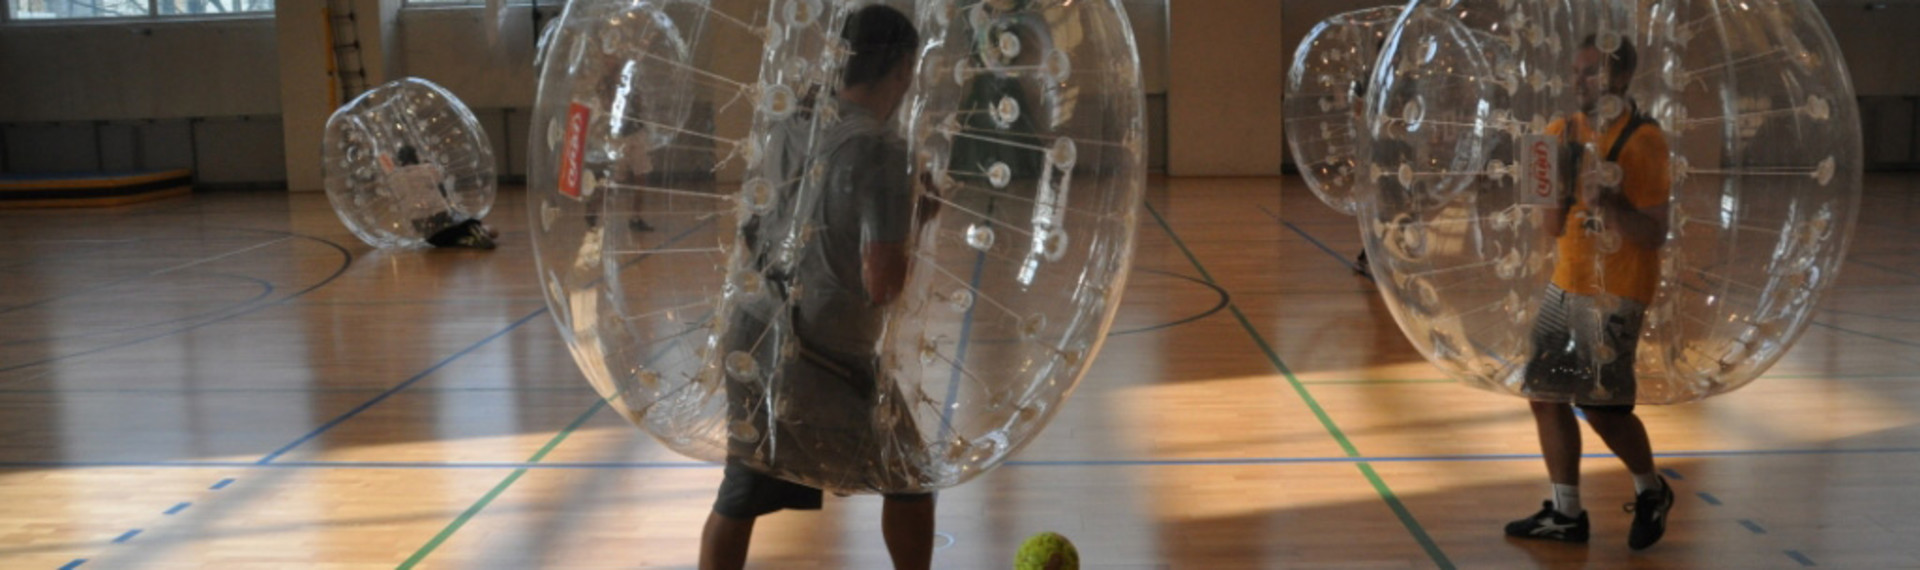 Bubble Football Tallinn | Pissup Tours